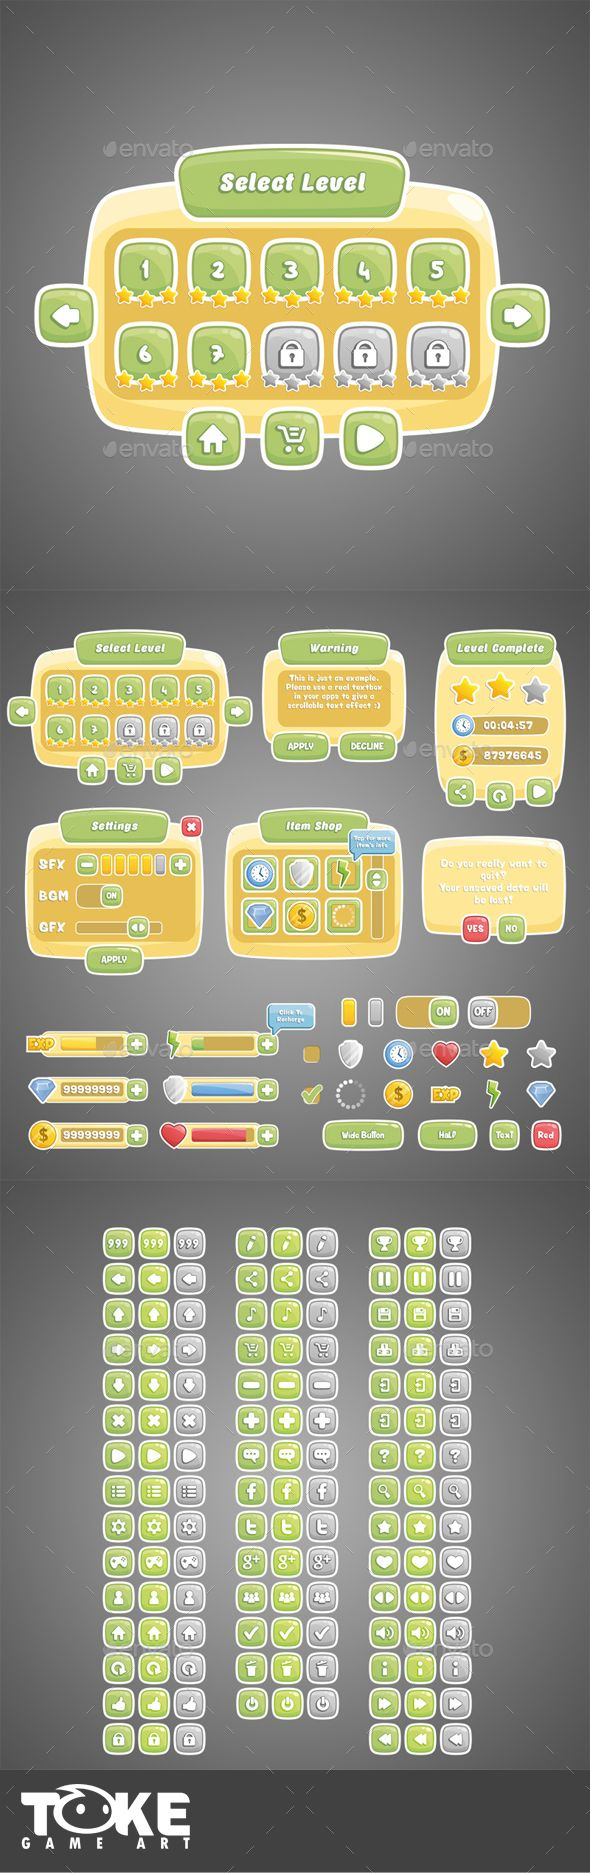 Classic Themed Game UI Template Transparent PNG, Layered PNG, Vector EPS, AI Illustrator #gui